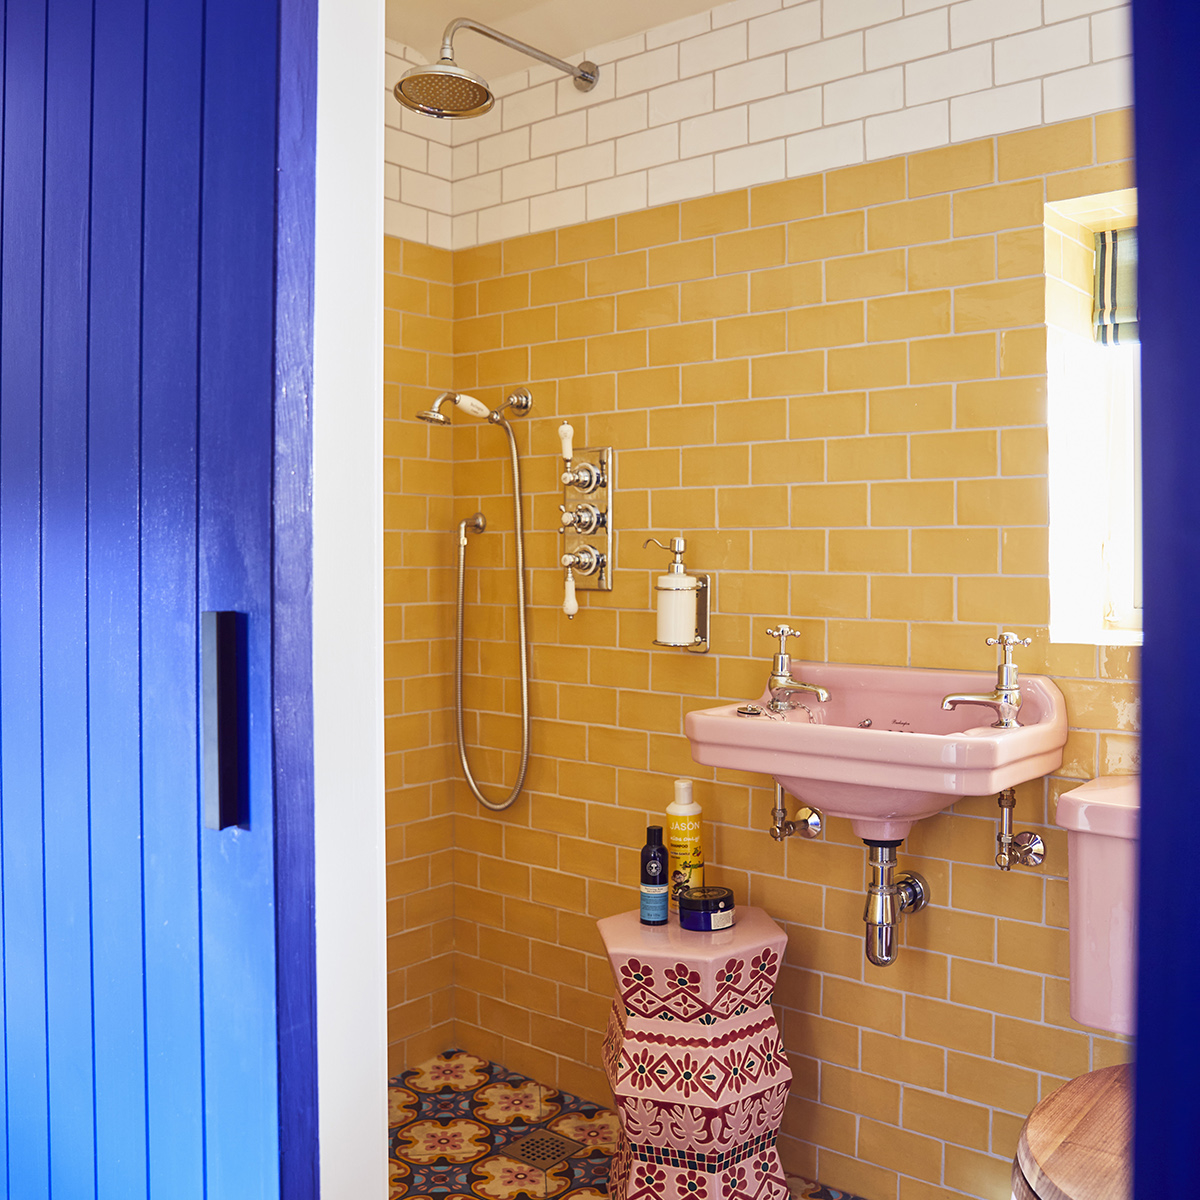 Shower room with yellow wall tiles, pink blue and yellow floor tiles and pink sanitaryware. In the home of Sophie Robinson